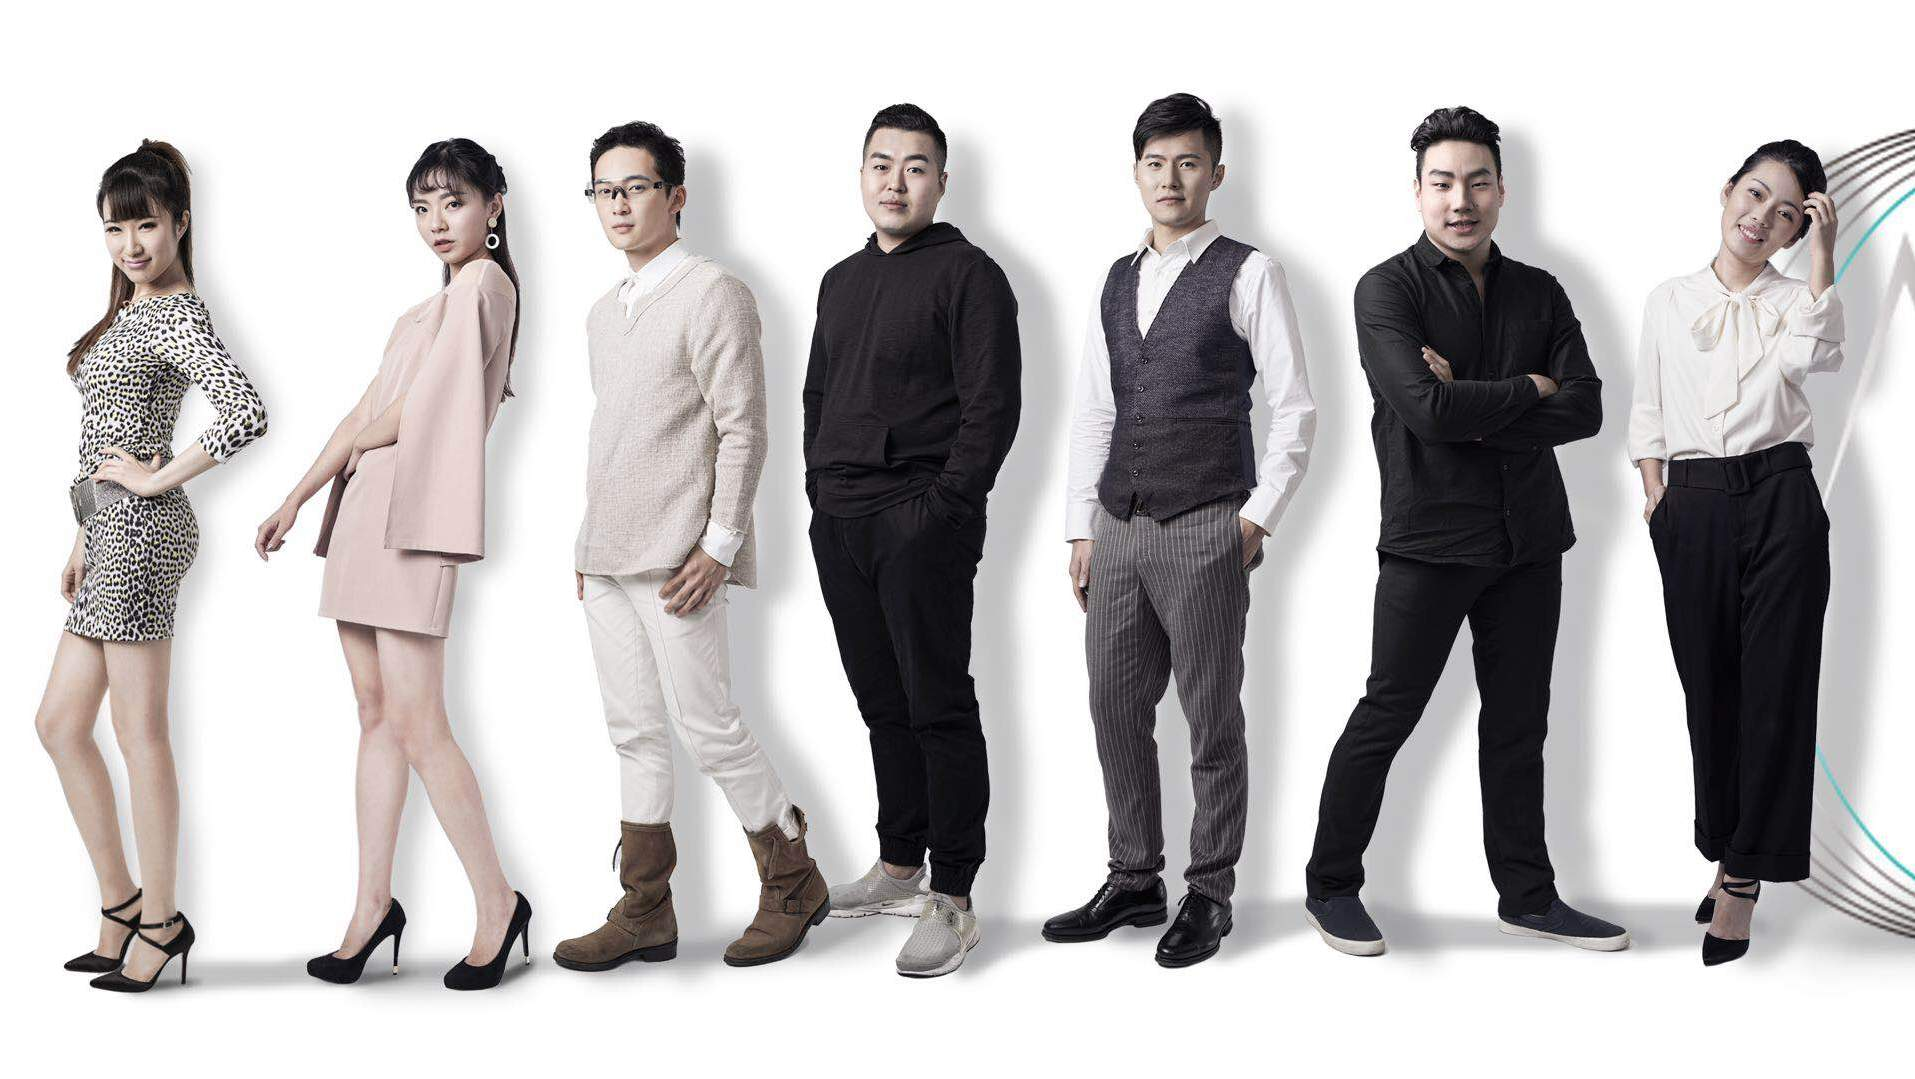 ba8da24ad Chinese Millennial Founders Challenge the Status Quo by Making Companies  for Their Generation